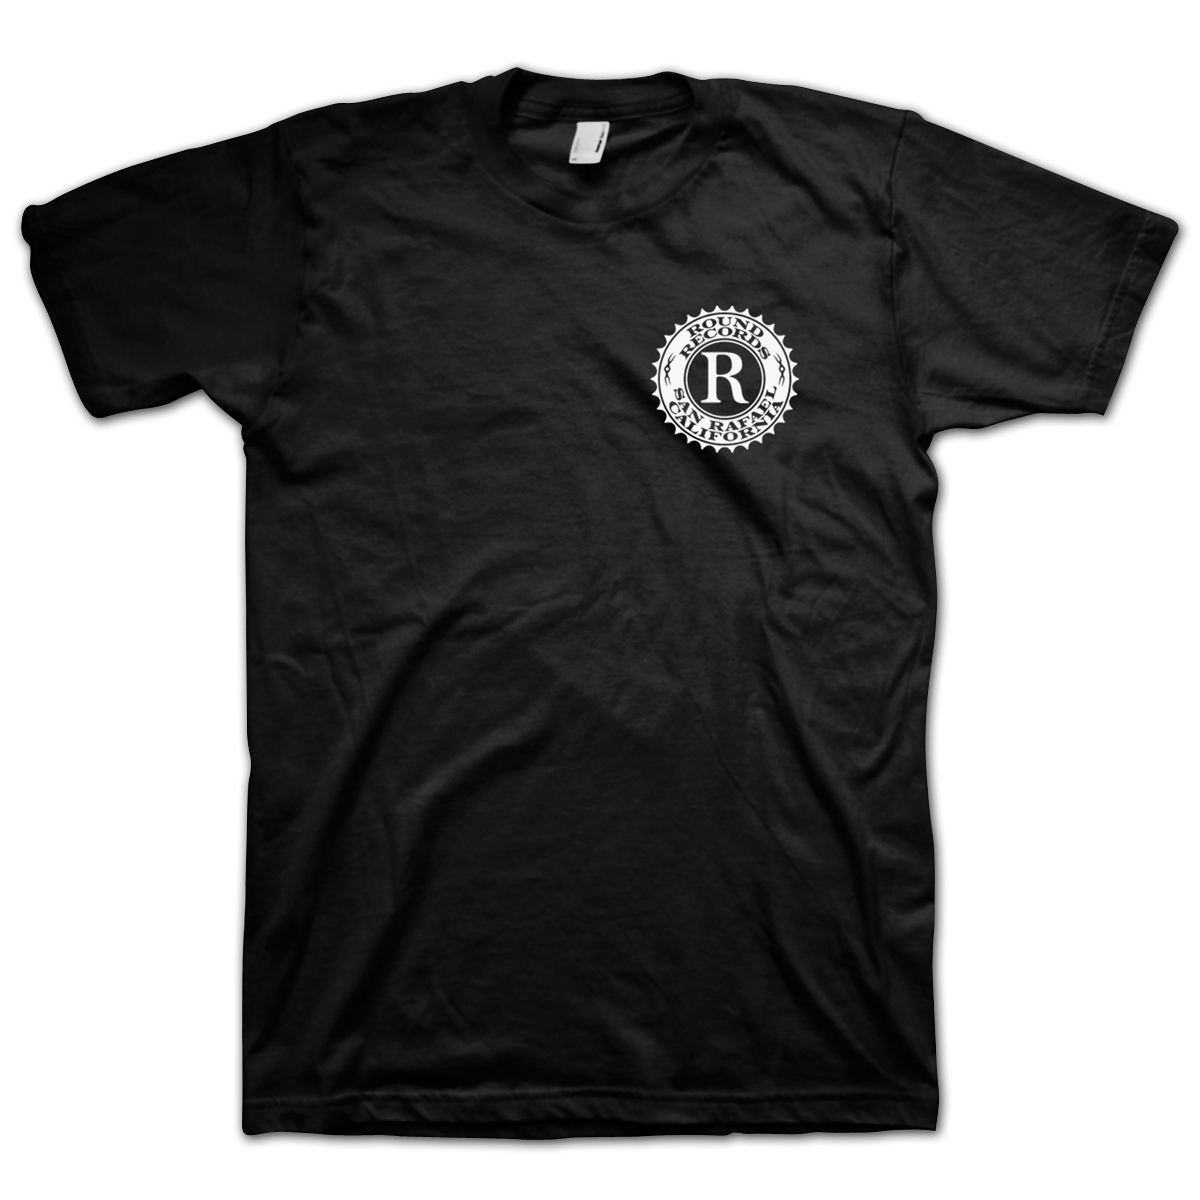 Jerry Garcia Round Records Organic T-shirt